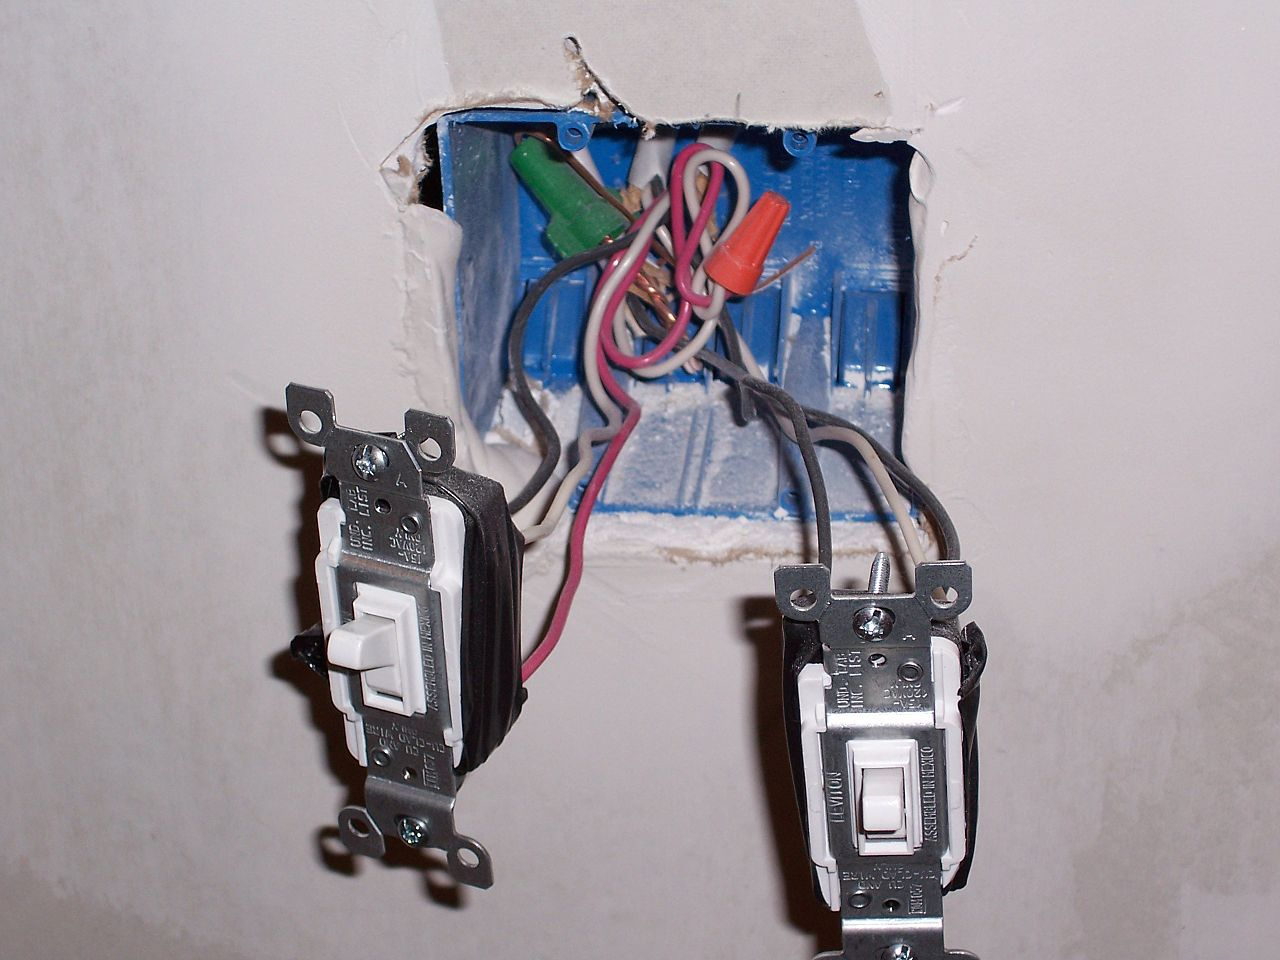 wiring diagram for light switch and outlet in same box 2004 hyundai accent radio how to connect electrical wires fixture terminals